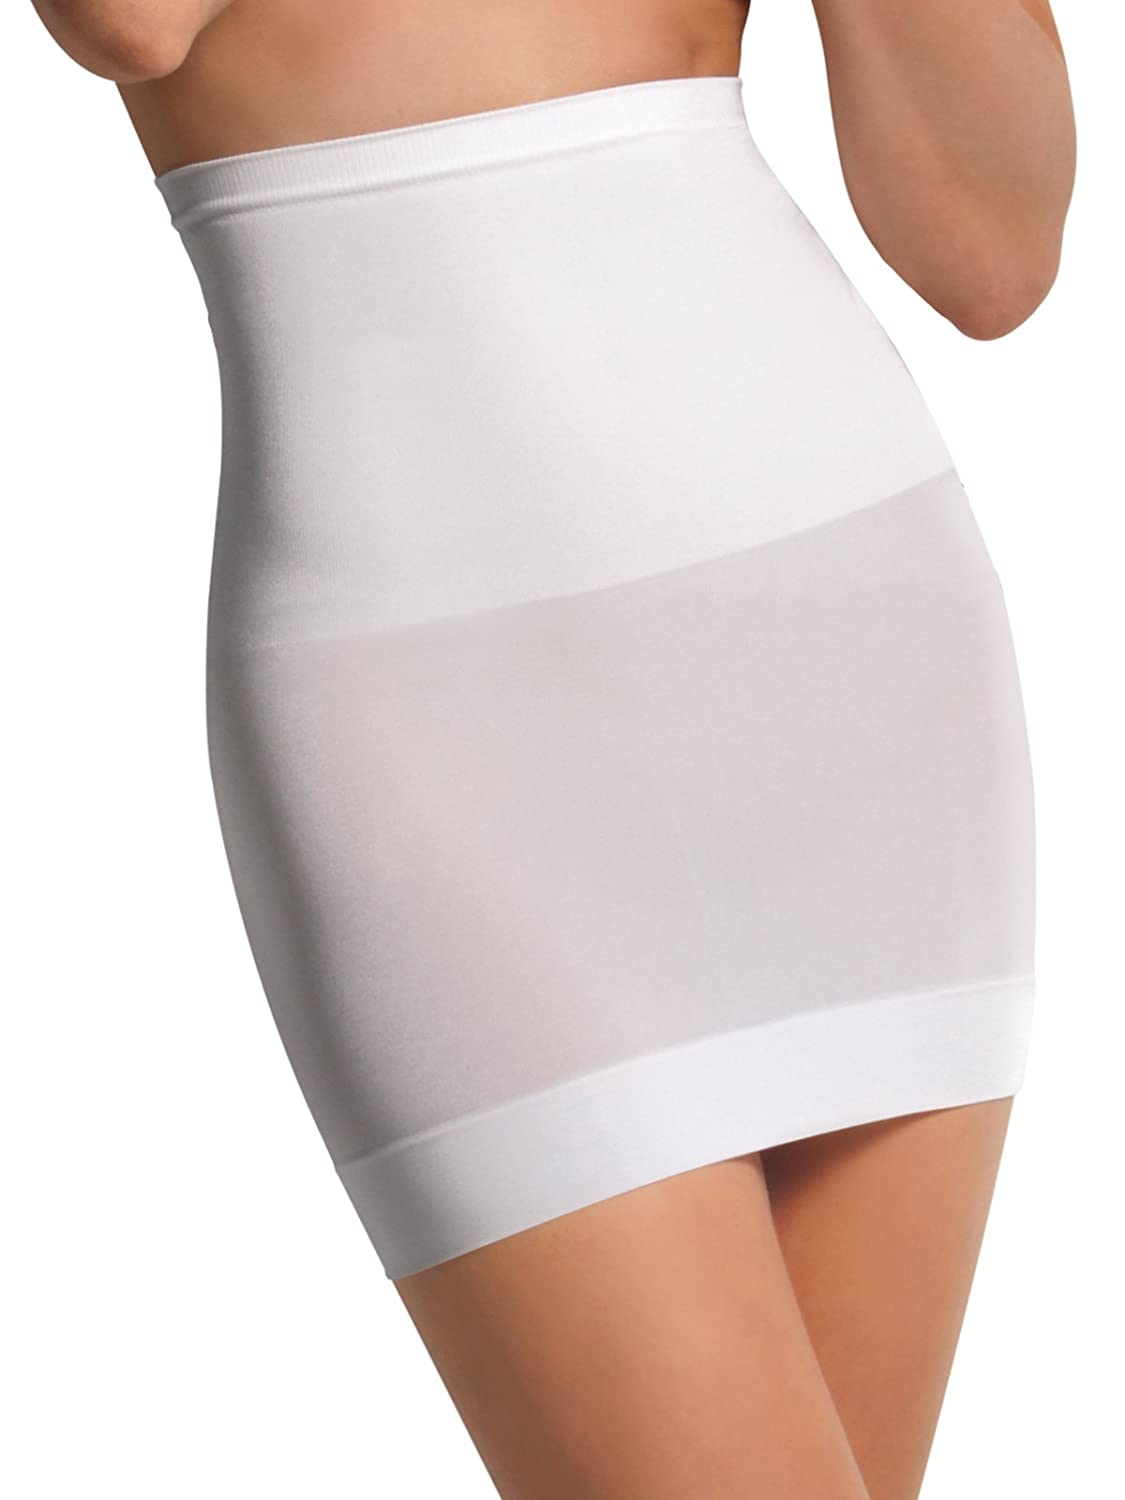 SENSI' Half Slips Women's Firm Control Shaping Underskirt high Waist Seamless Made in Italy